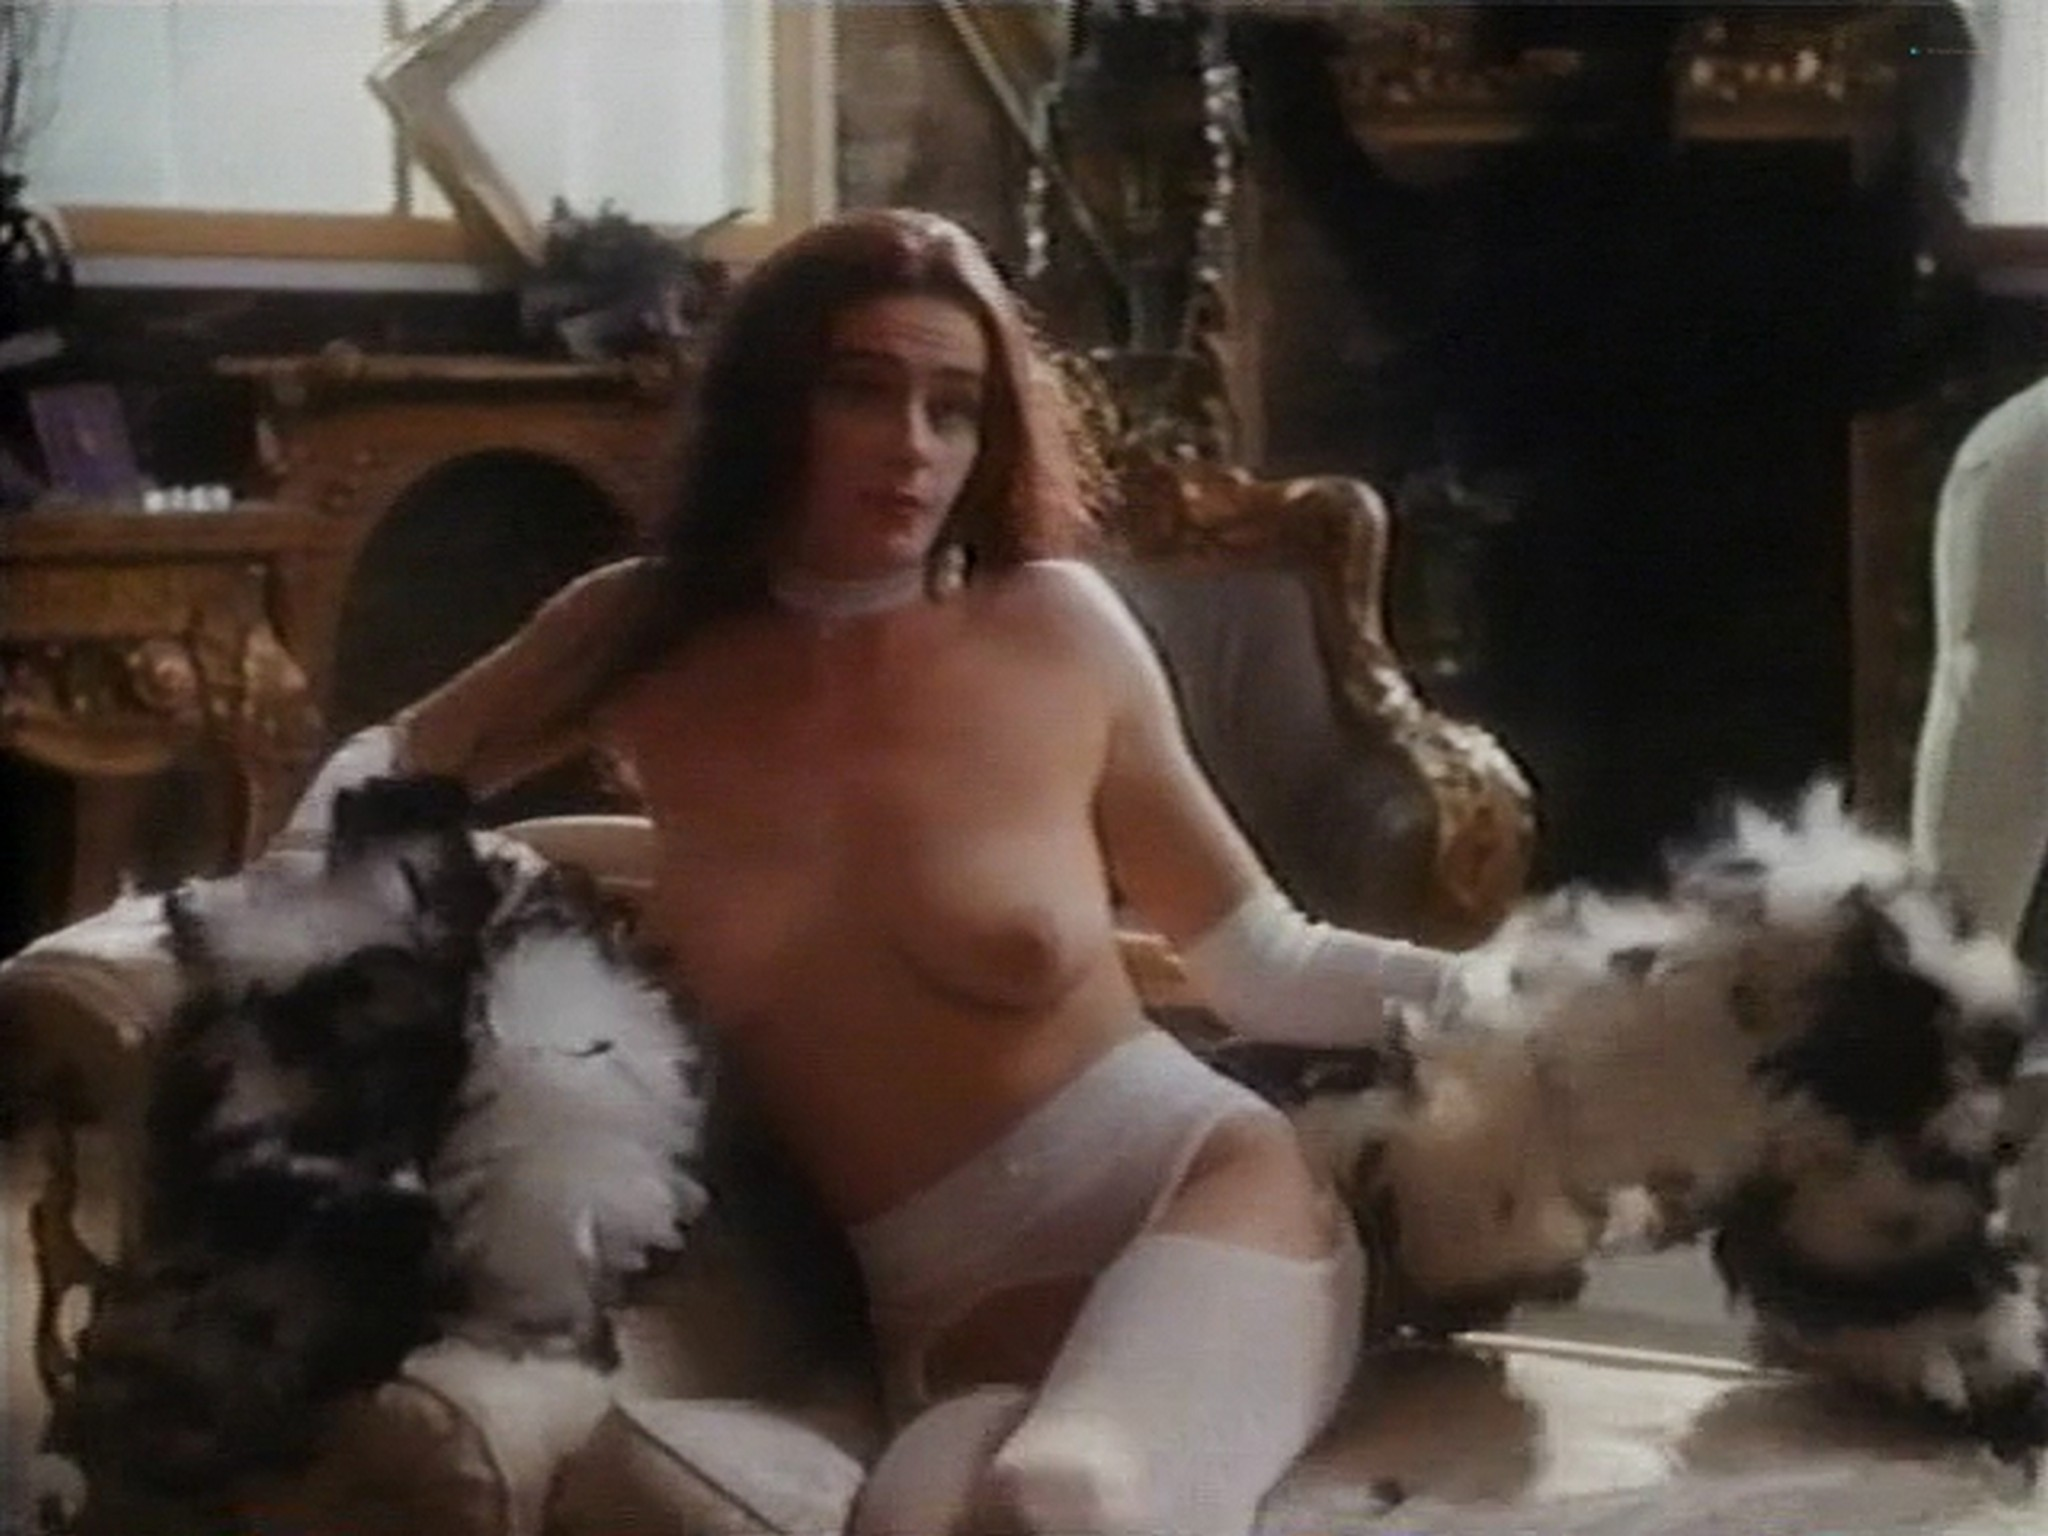 Shannon Whirry nude Elizabeth Sandifer and Shannon McLeod all nude and sex in - Animal Instincts II (1994) (14)